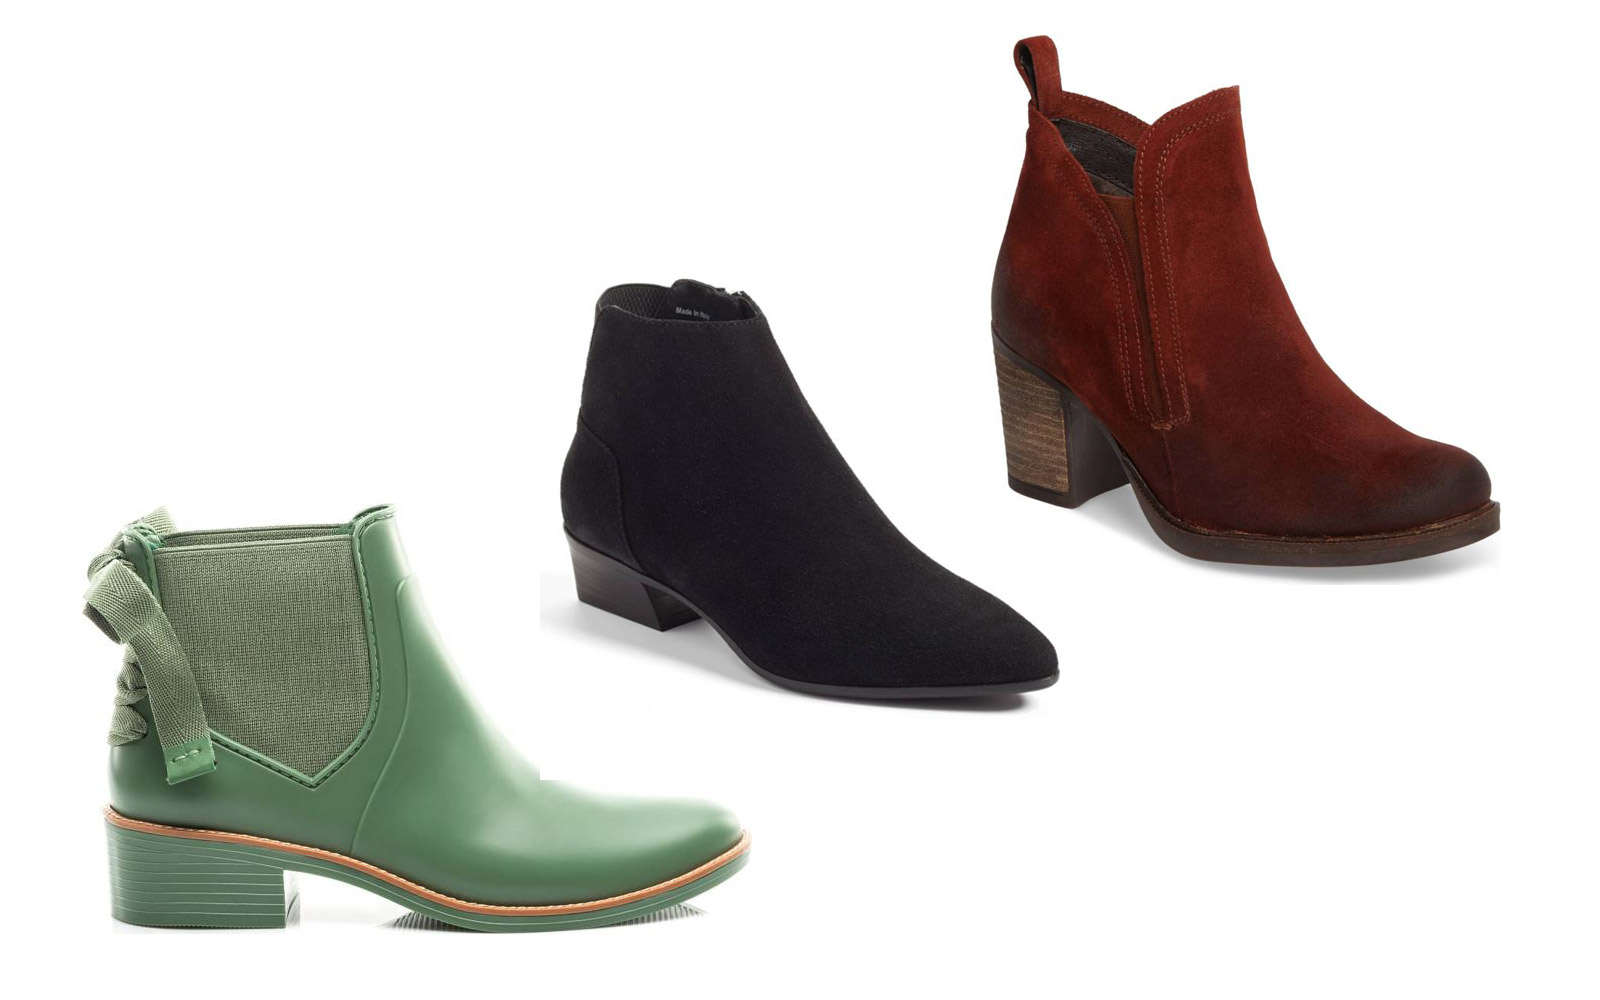 9 Weatherproof Boots That Won't Ruin Your Outfit